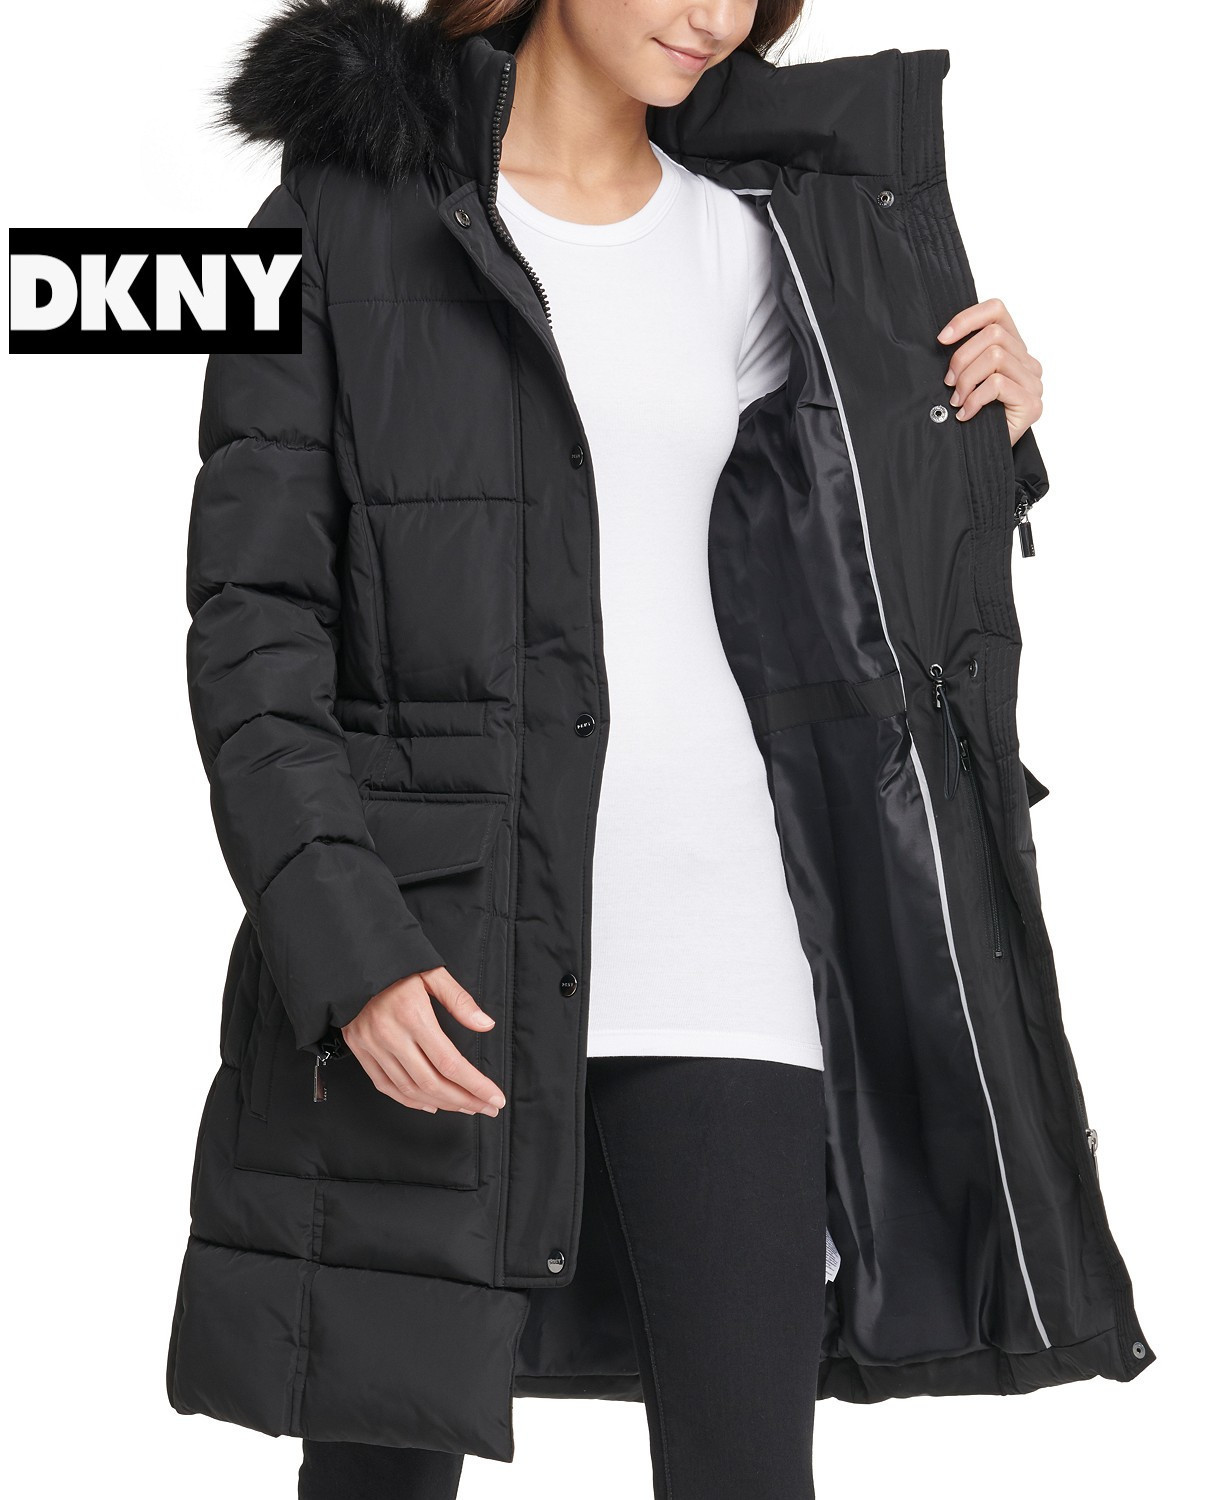 shop donna karan clothing